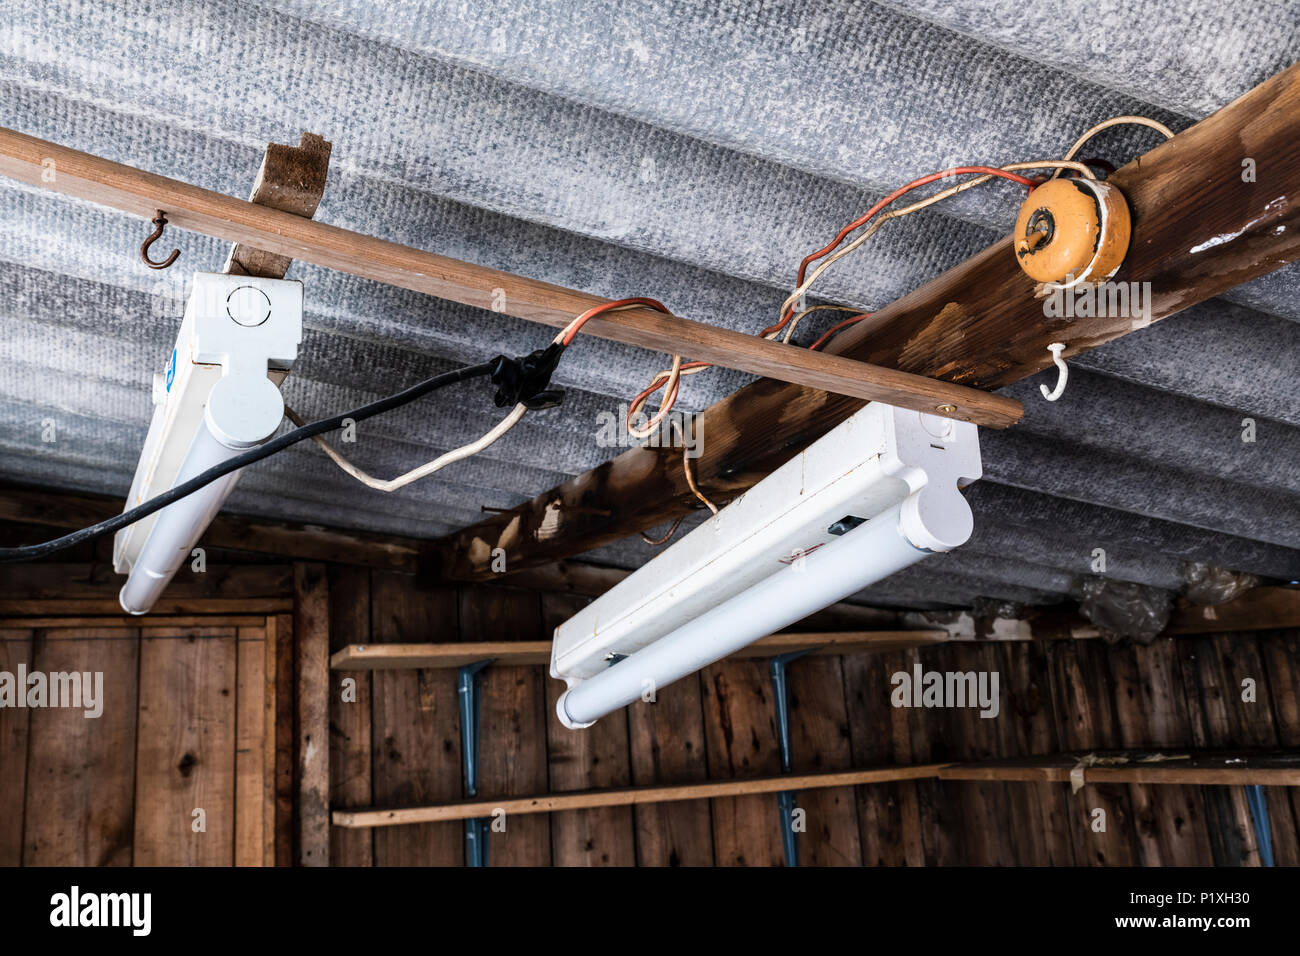 Faulty Wiring Stock Photos Images Alamy Diy Electrical Shed Dangerous Electric In An Old Delapidated Image